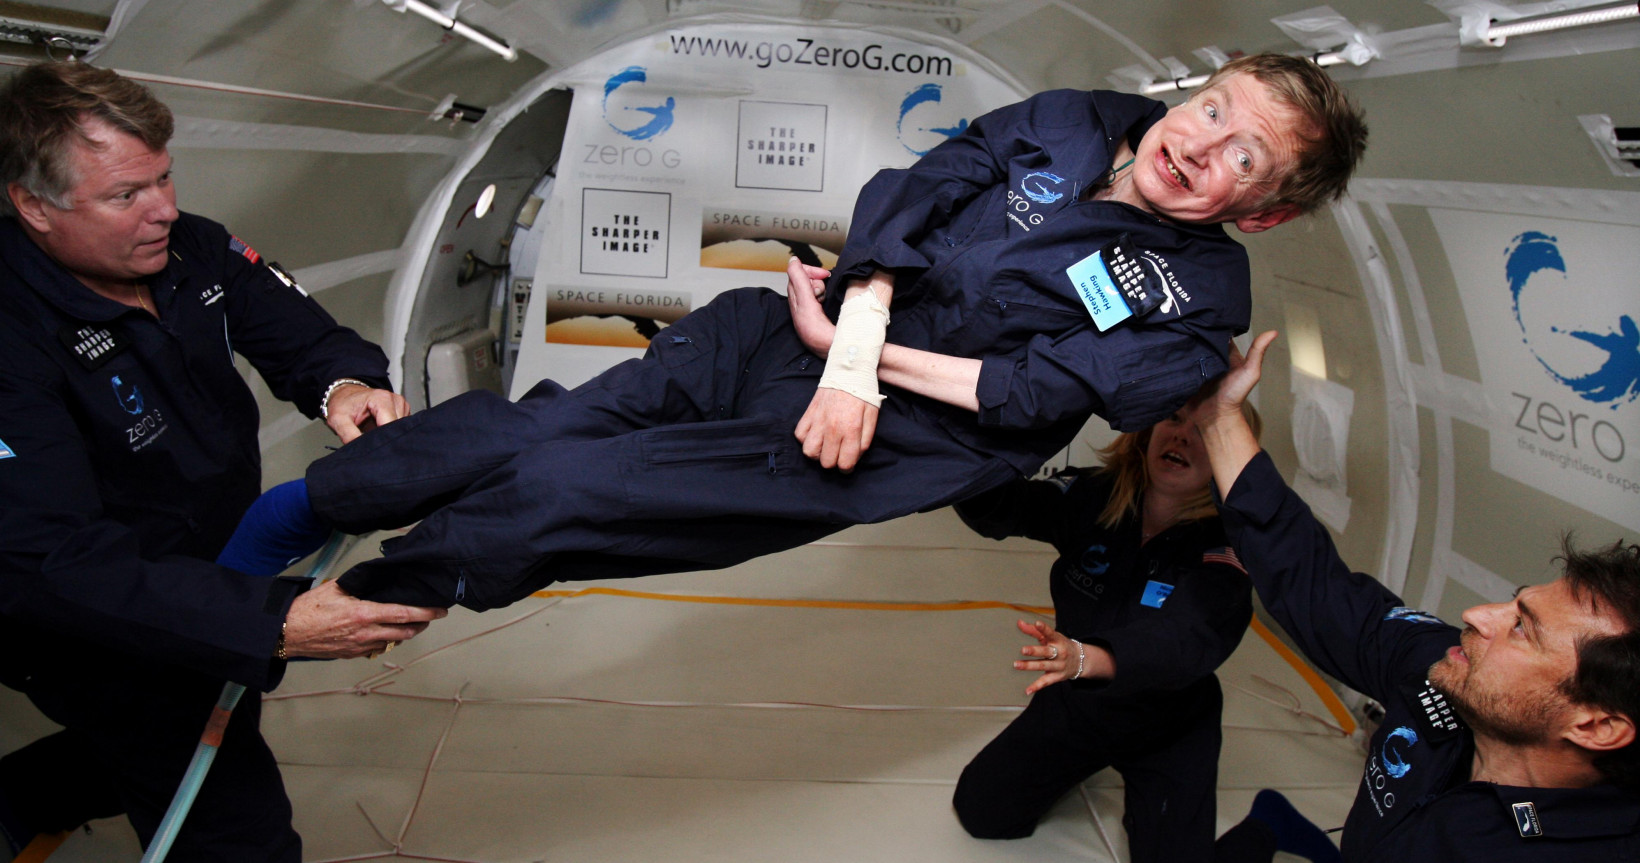 Remembering the late Professor Stephen Hawking on his birthday: A legacy of humanity